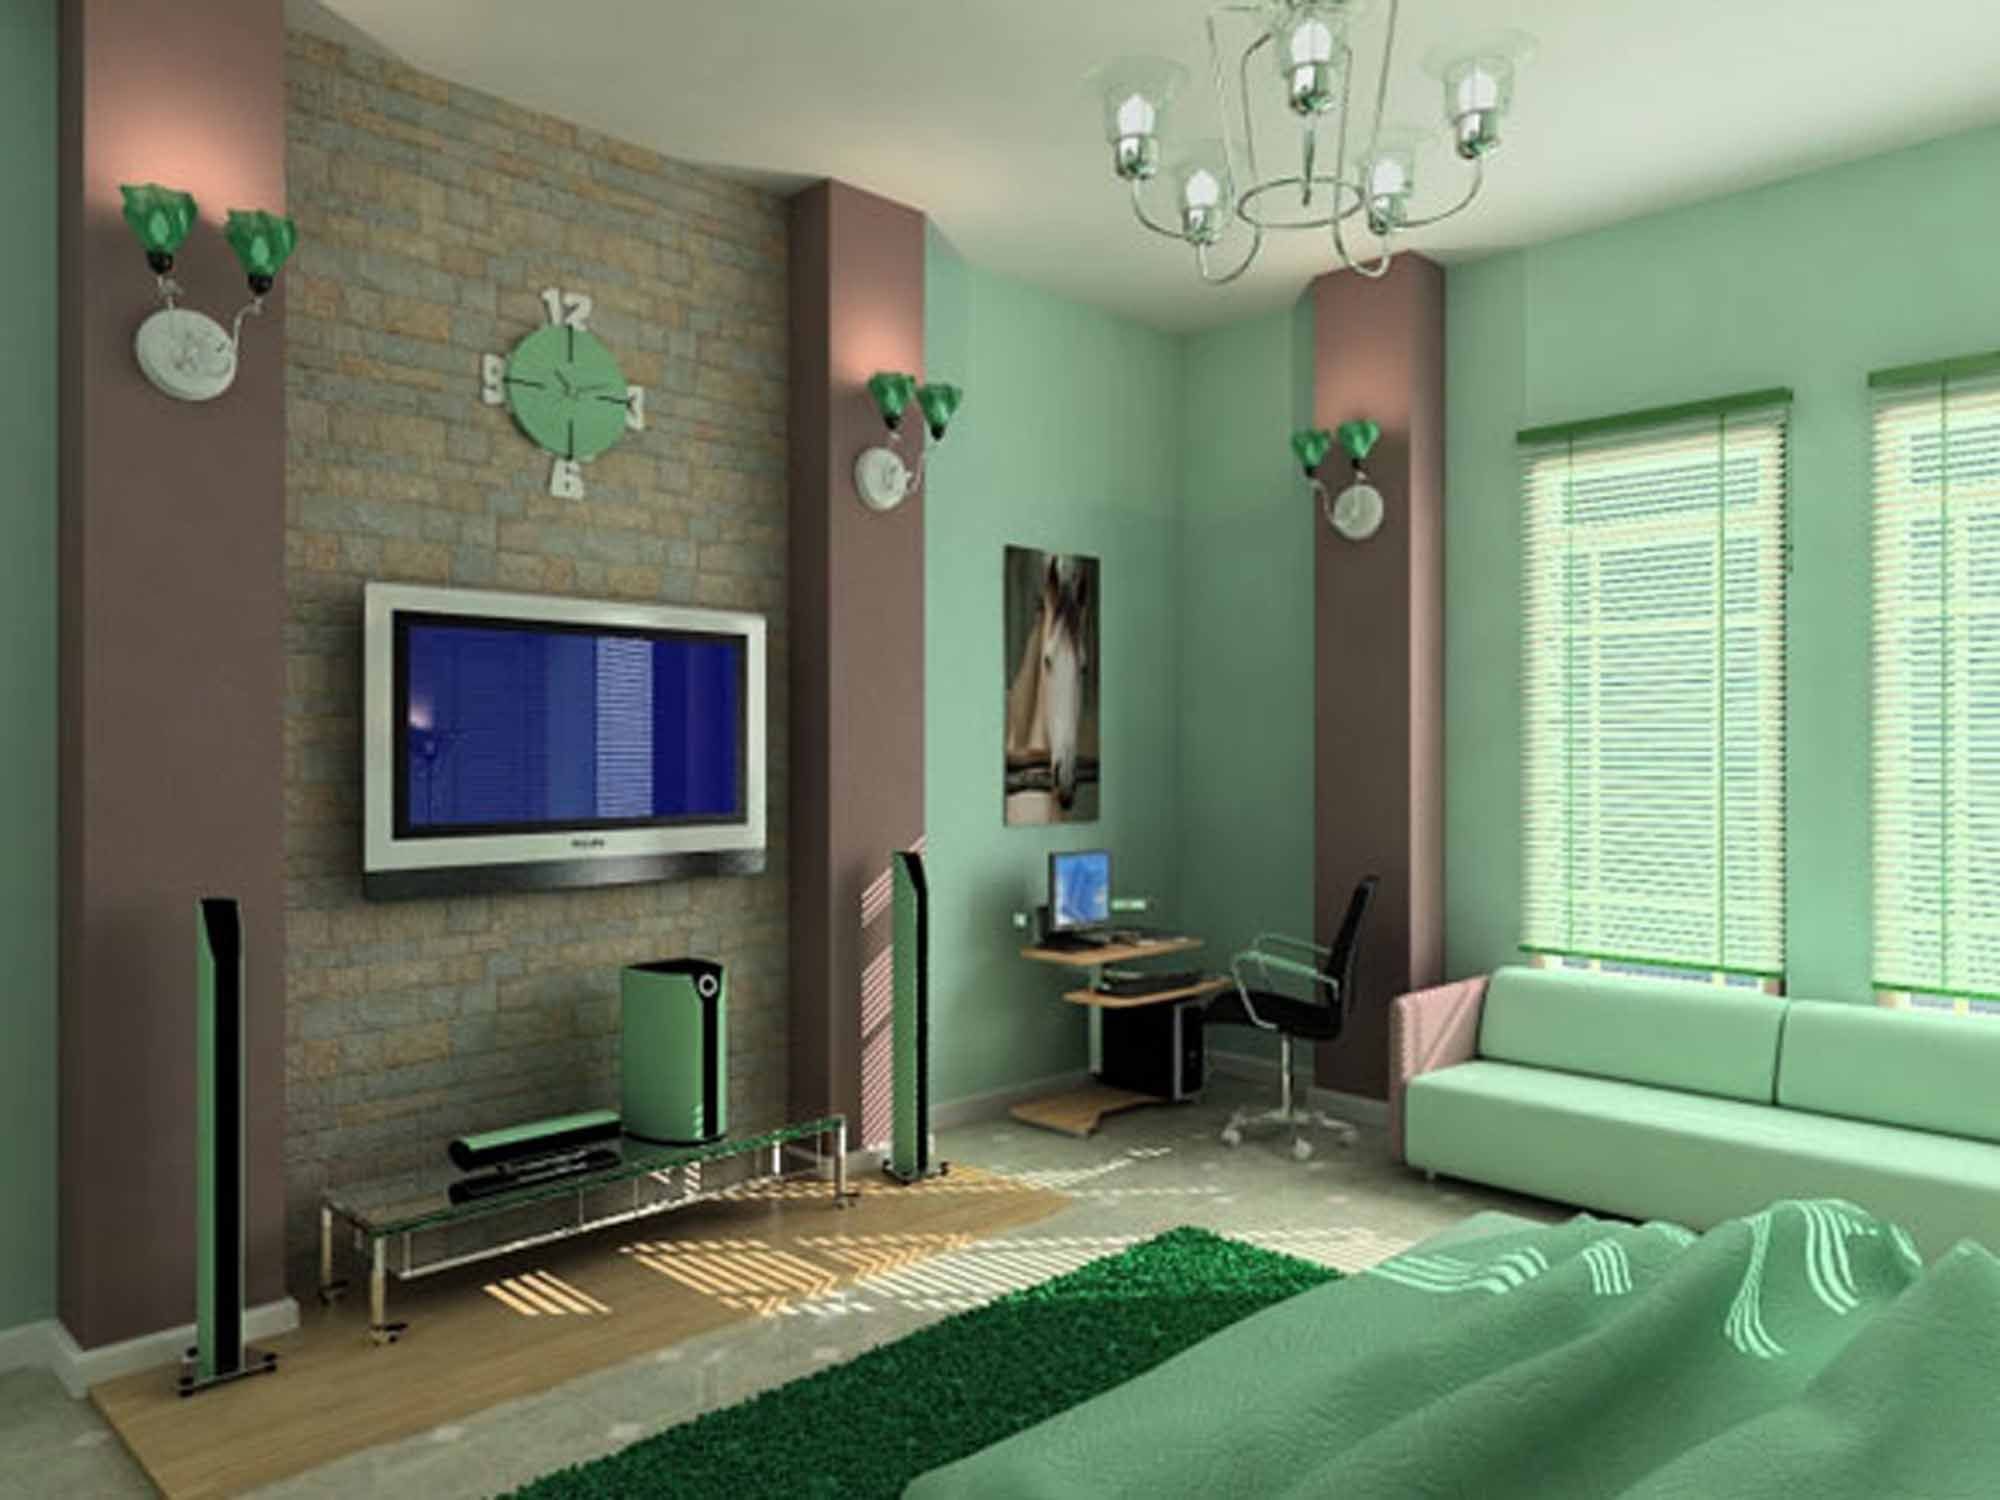 Bedroom colors green and white - Colour